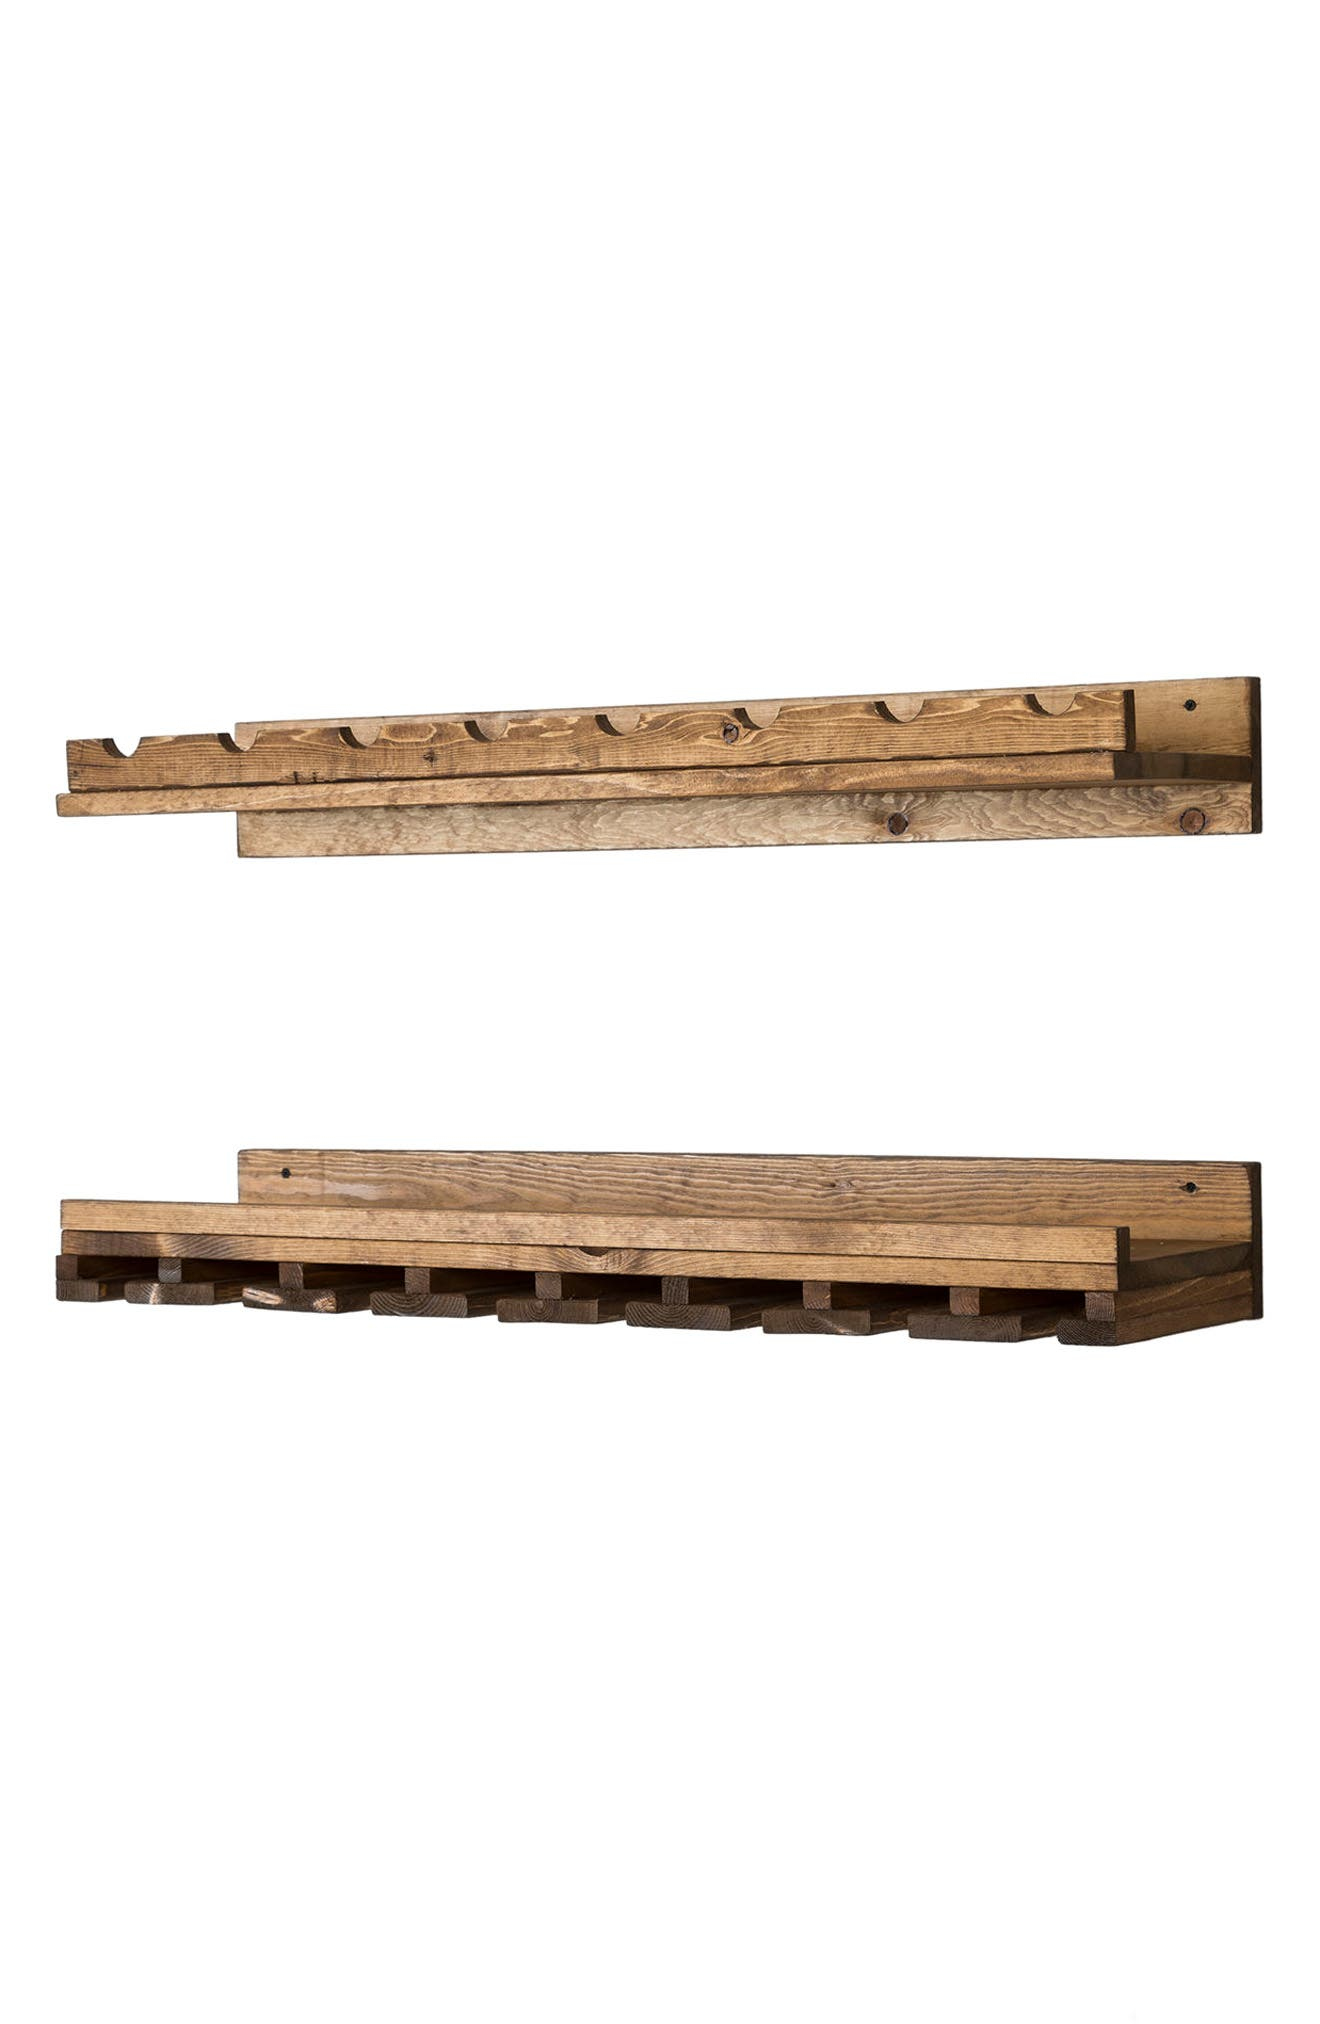 Set of 2 Pine Wood Wine Racks,                             Alternate thumbnail 3, color,                             200